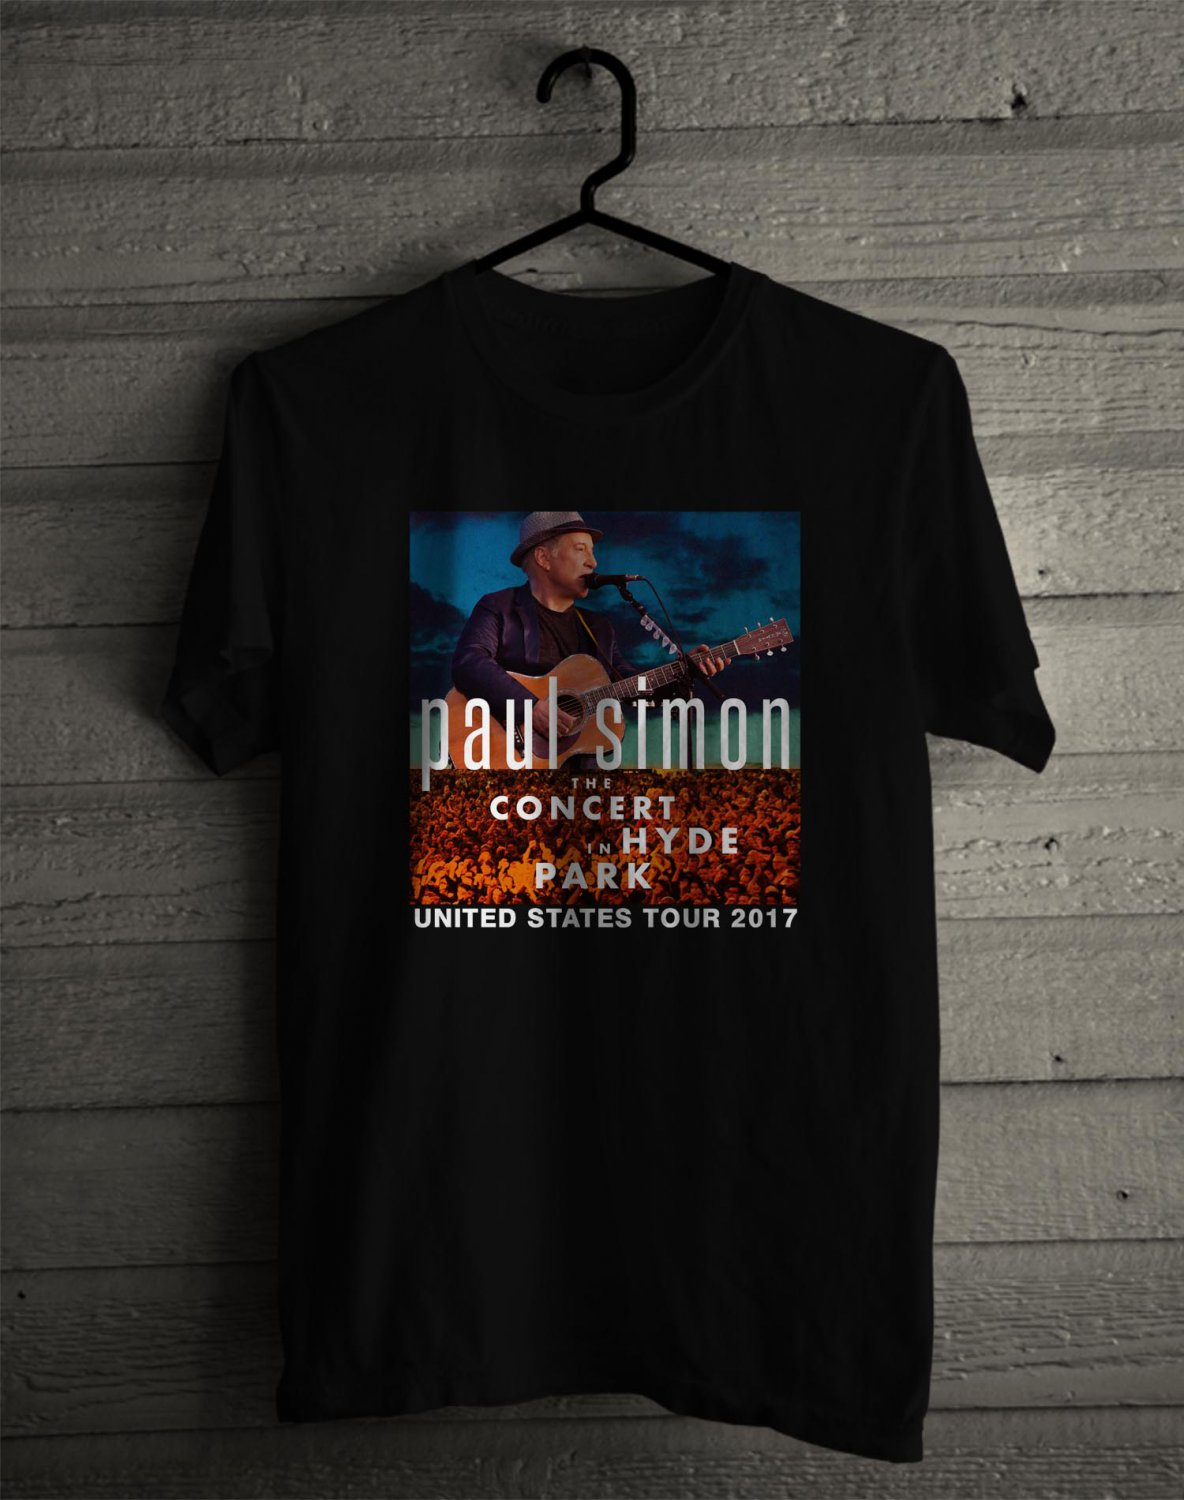 Paul Simons Concert In Hyde Park 2017 Black Tee's  Front Side by Complexart c1